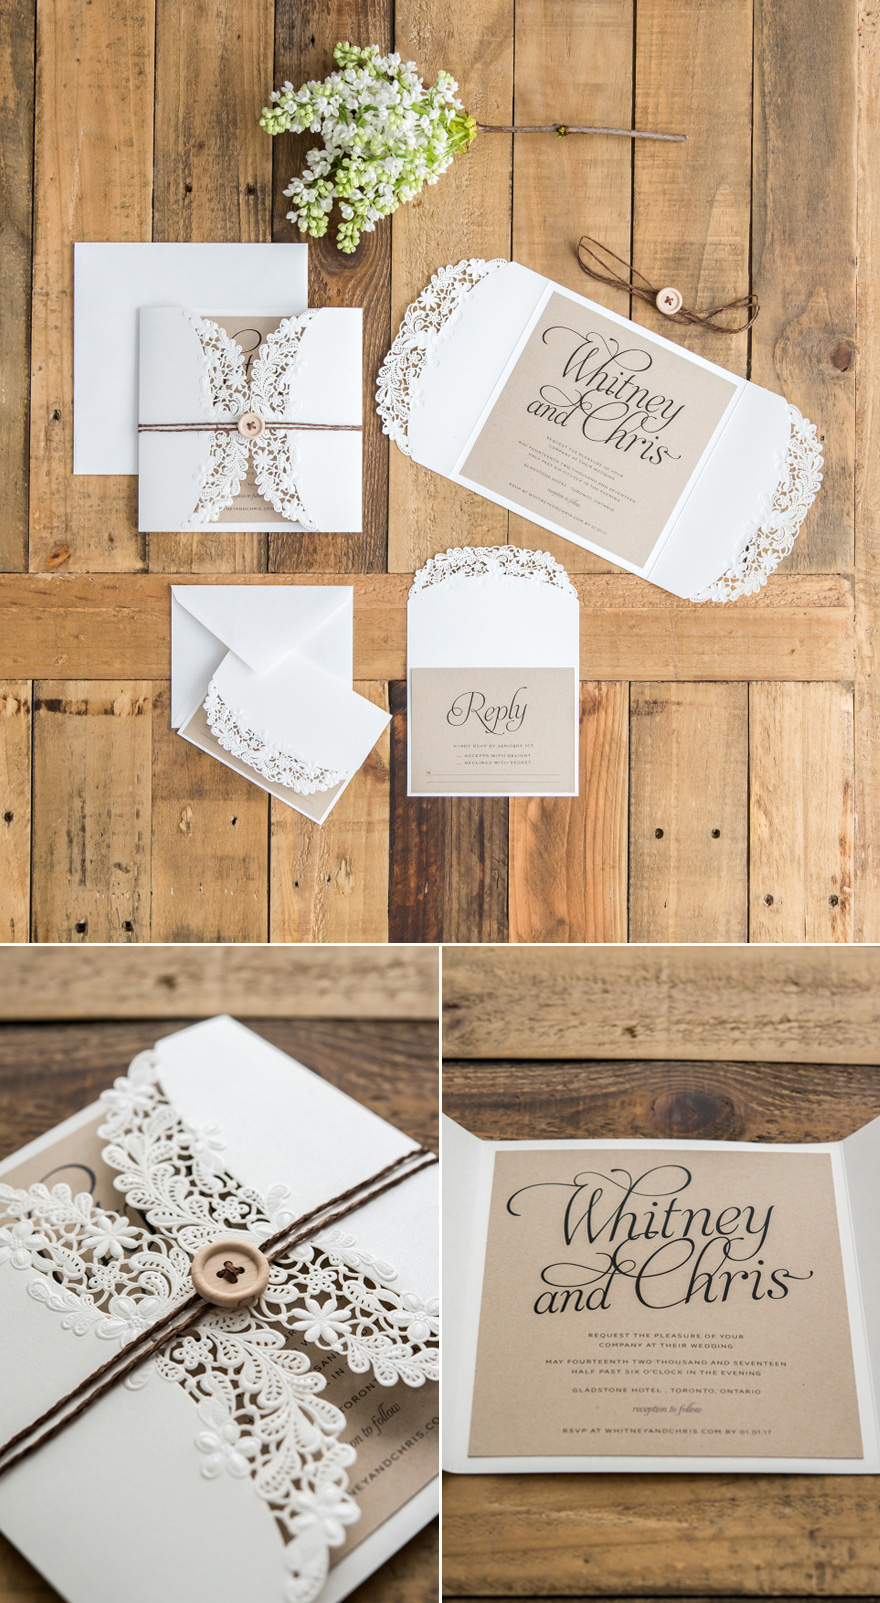 DIY Rustic Glam Buttons and Twine Wedding Stationery Idea   Confetti.co.uk